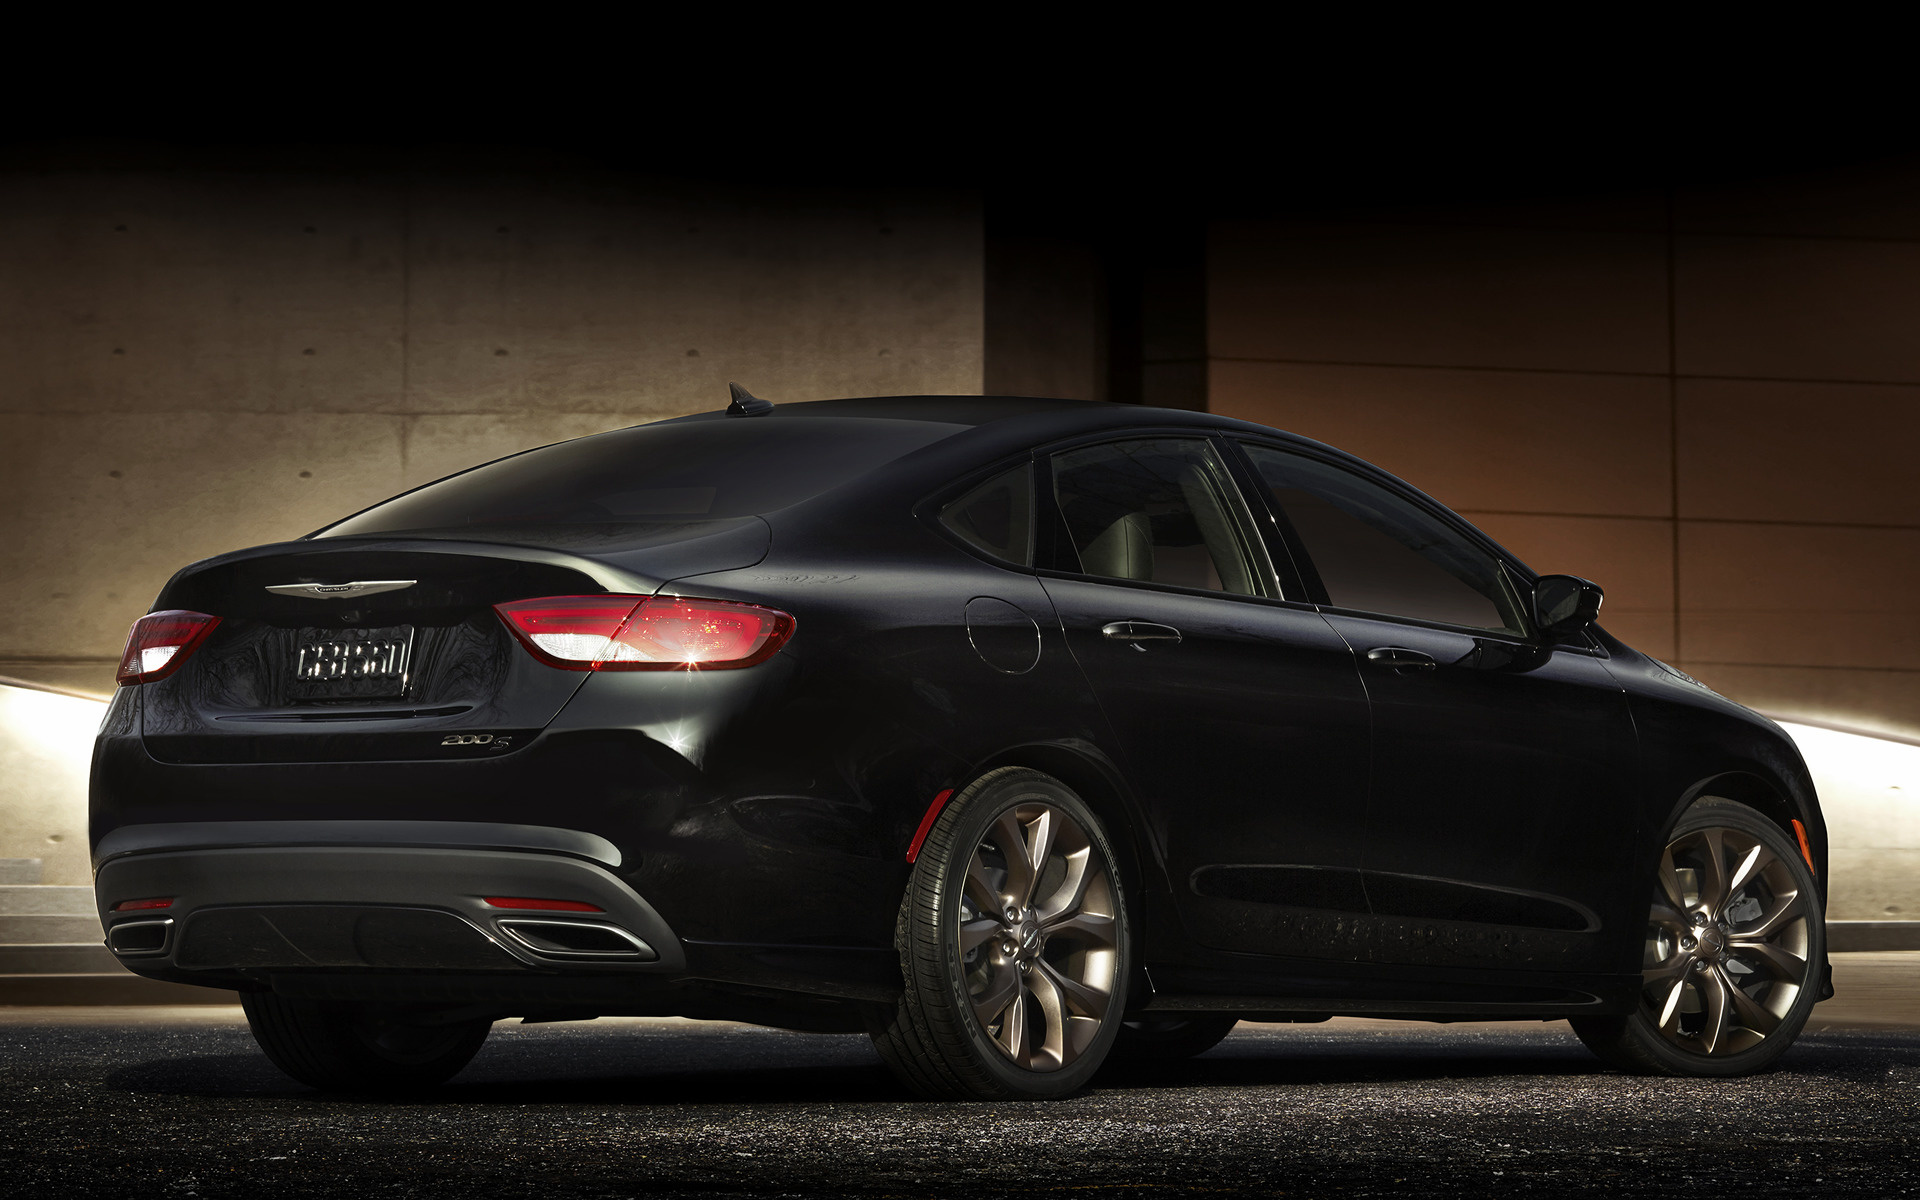 1920x1200 - Chrysler 200 Wallpapers 3